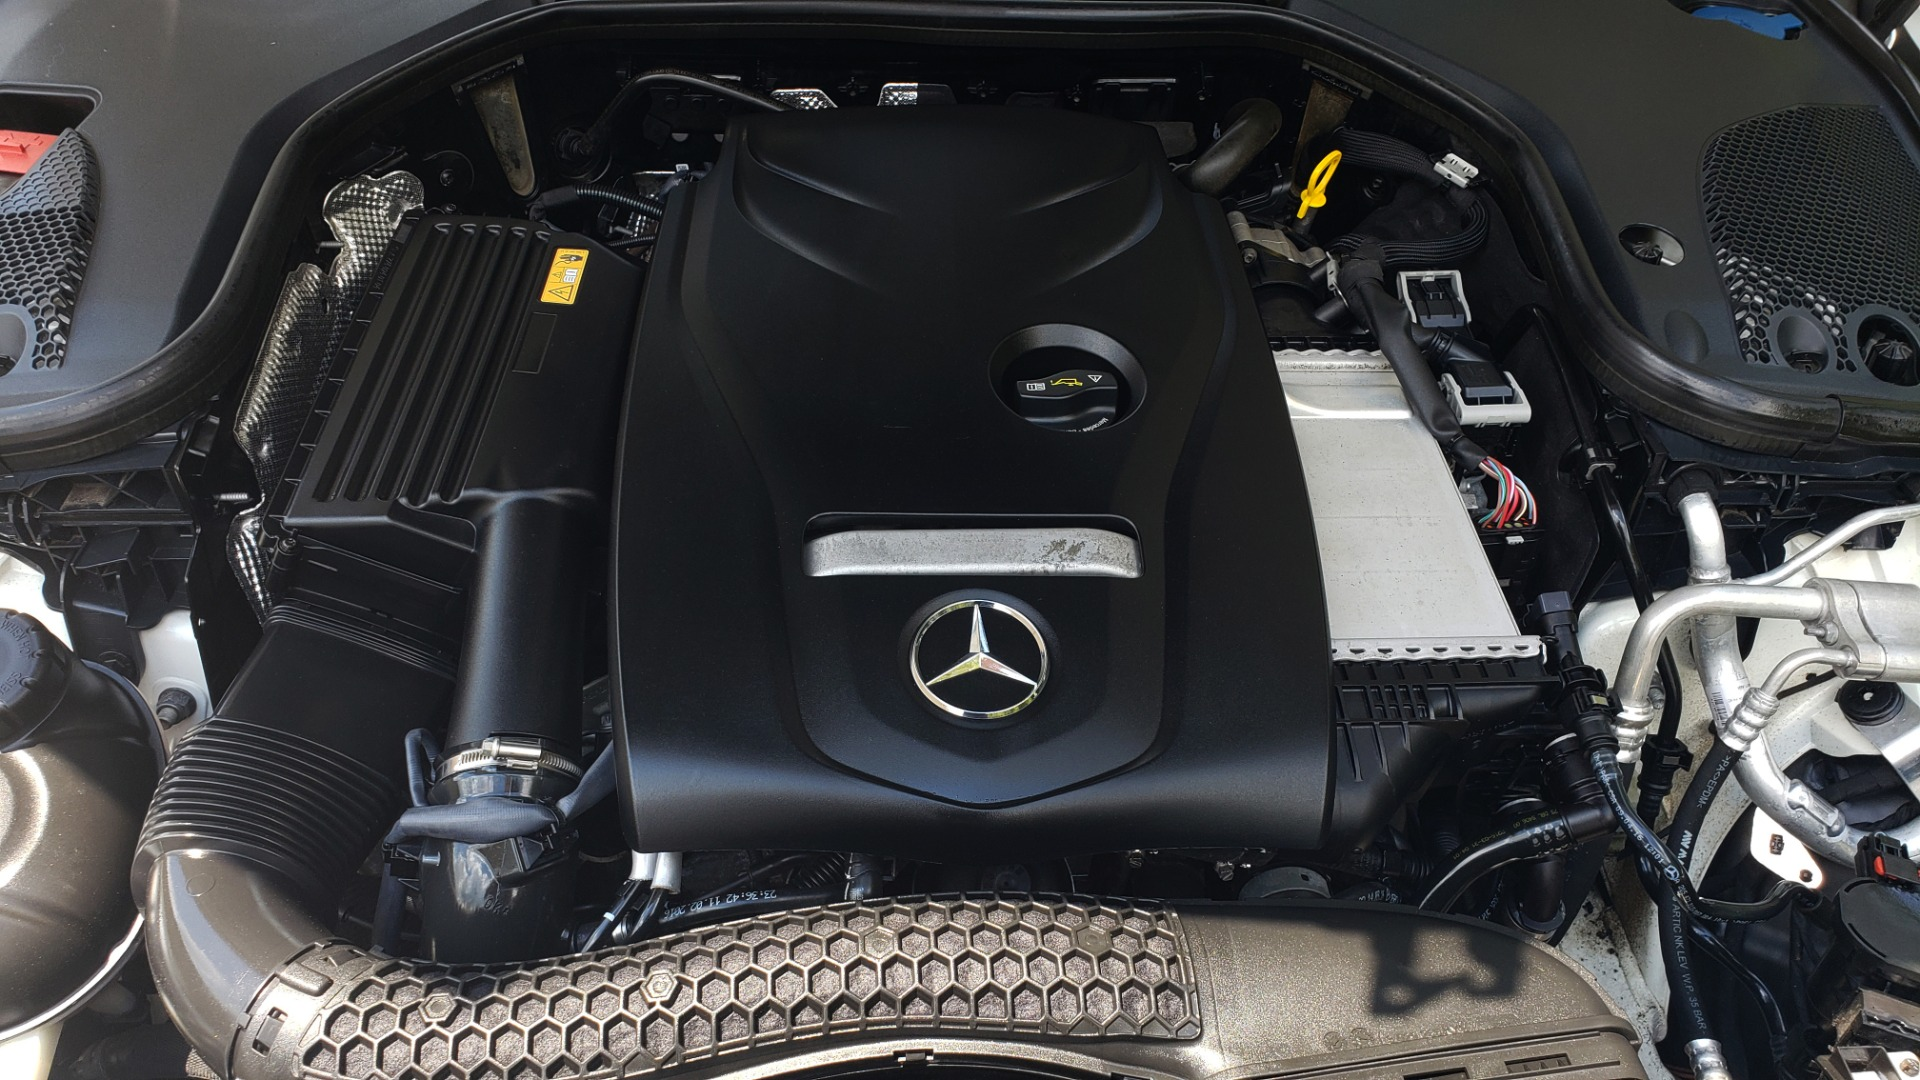 Used 2017 Mercedes-Benz E-CLASS E 300 PREMIUM / SPORT / NAV / SUNROOF / HTD STS / BSM / REARVIEW for sale $27,995 at Formula Imports in Charlotte NC 28227 12